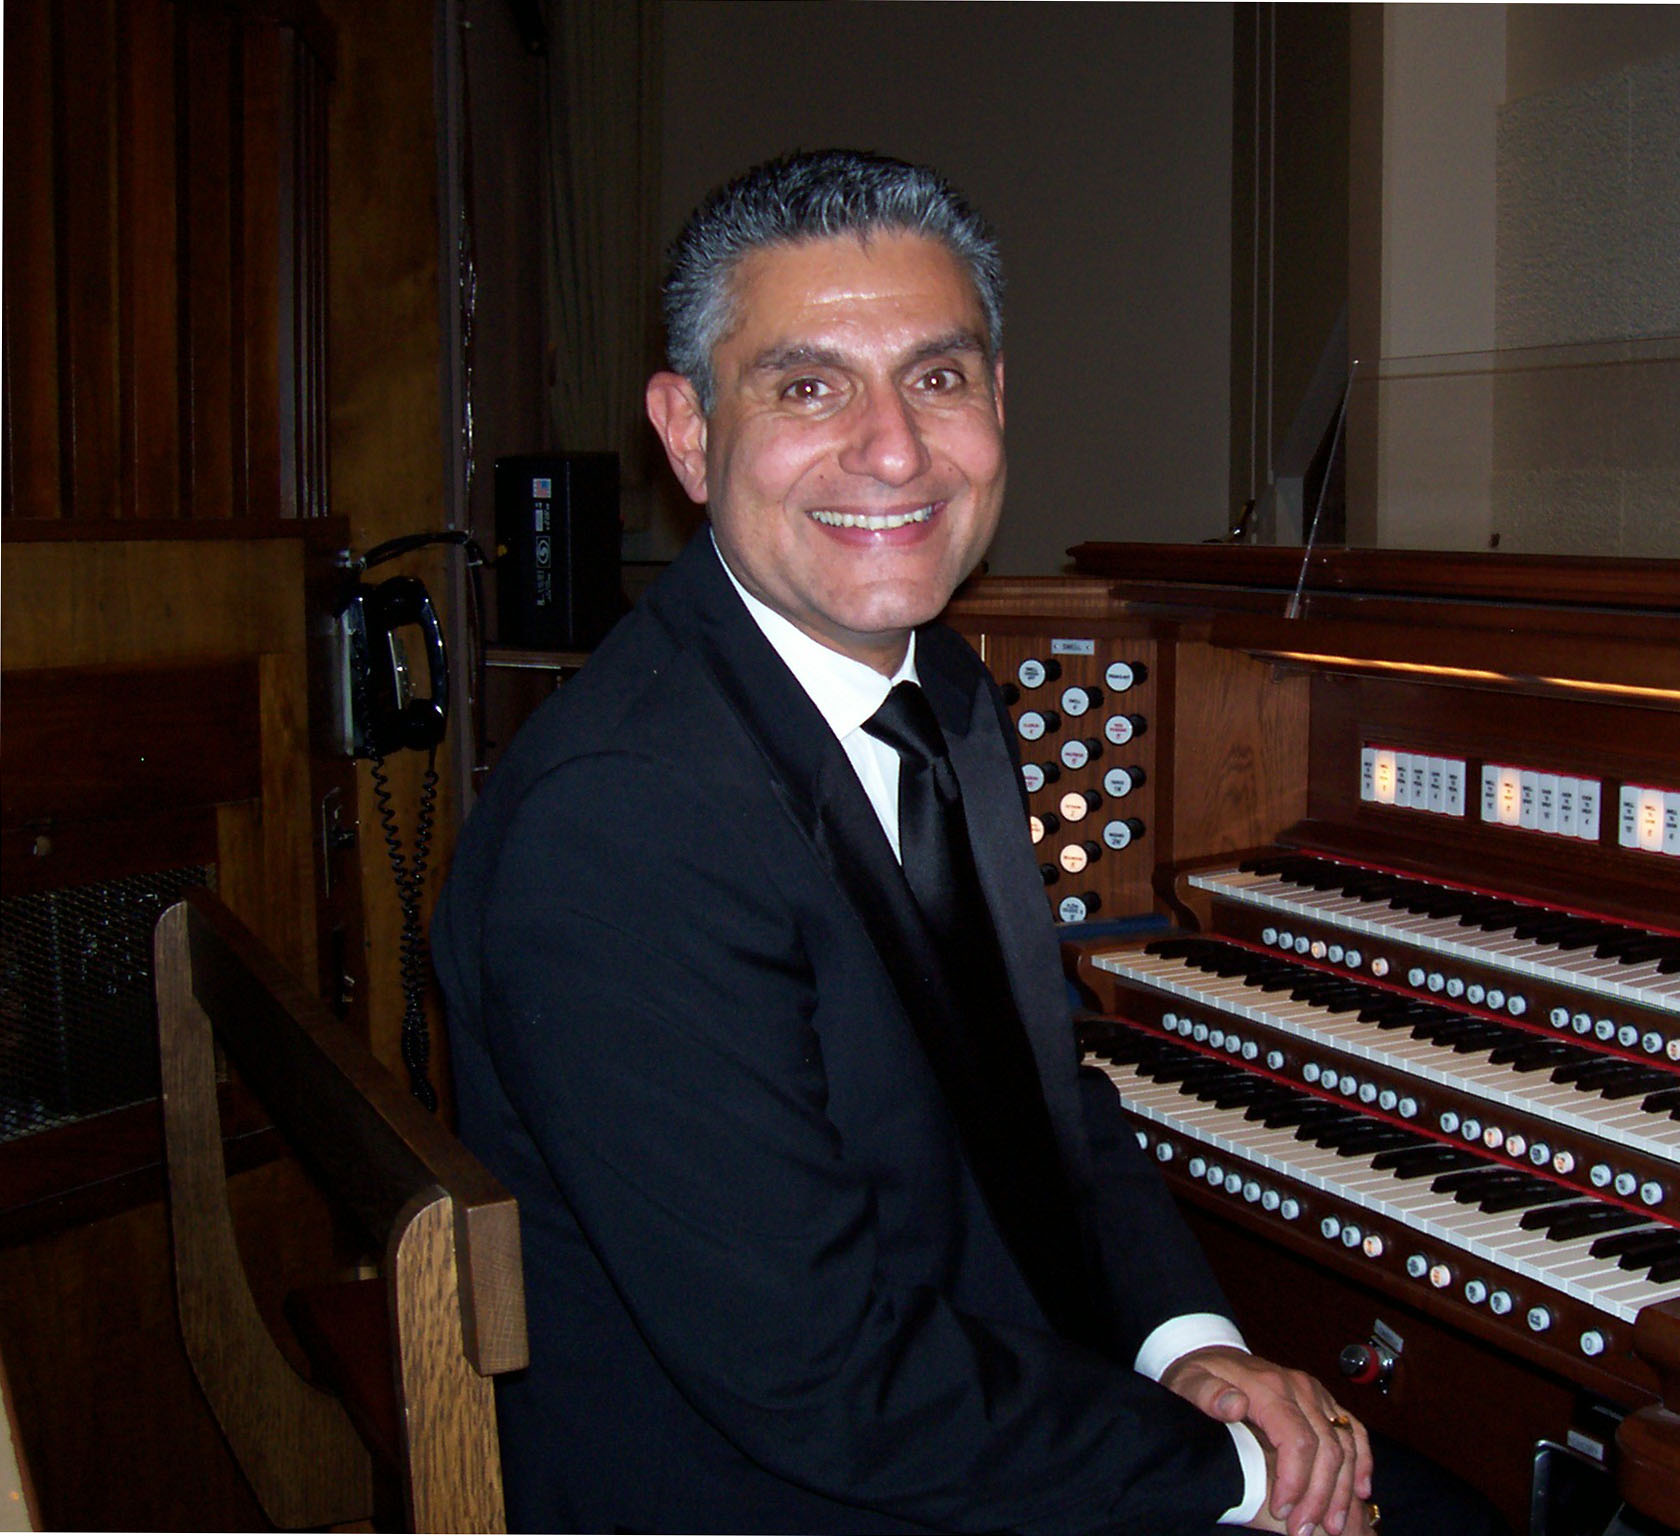 Organist from Sinai Temple